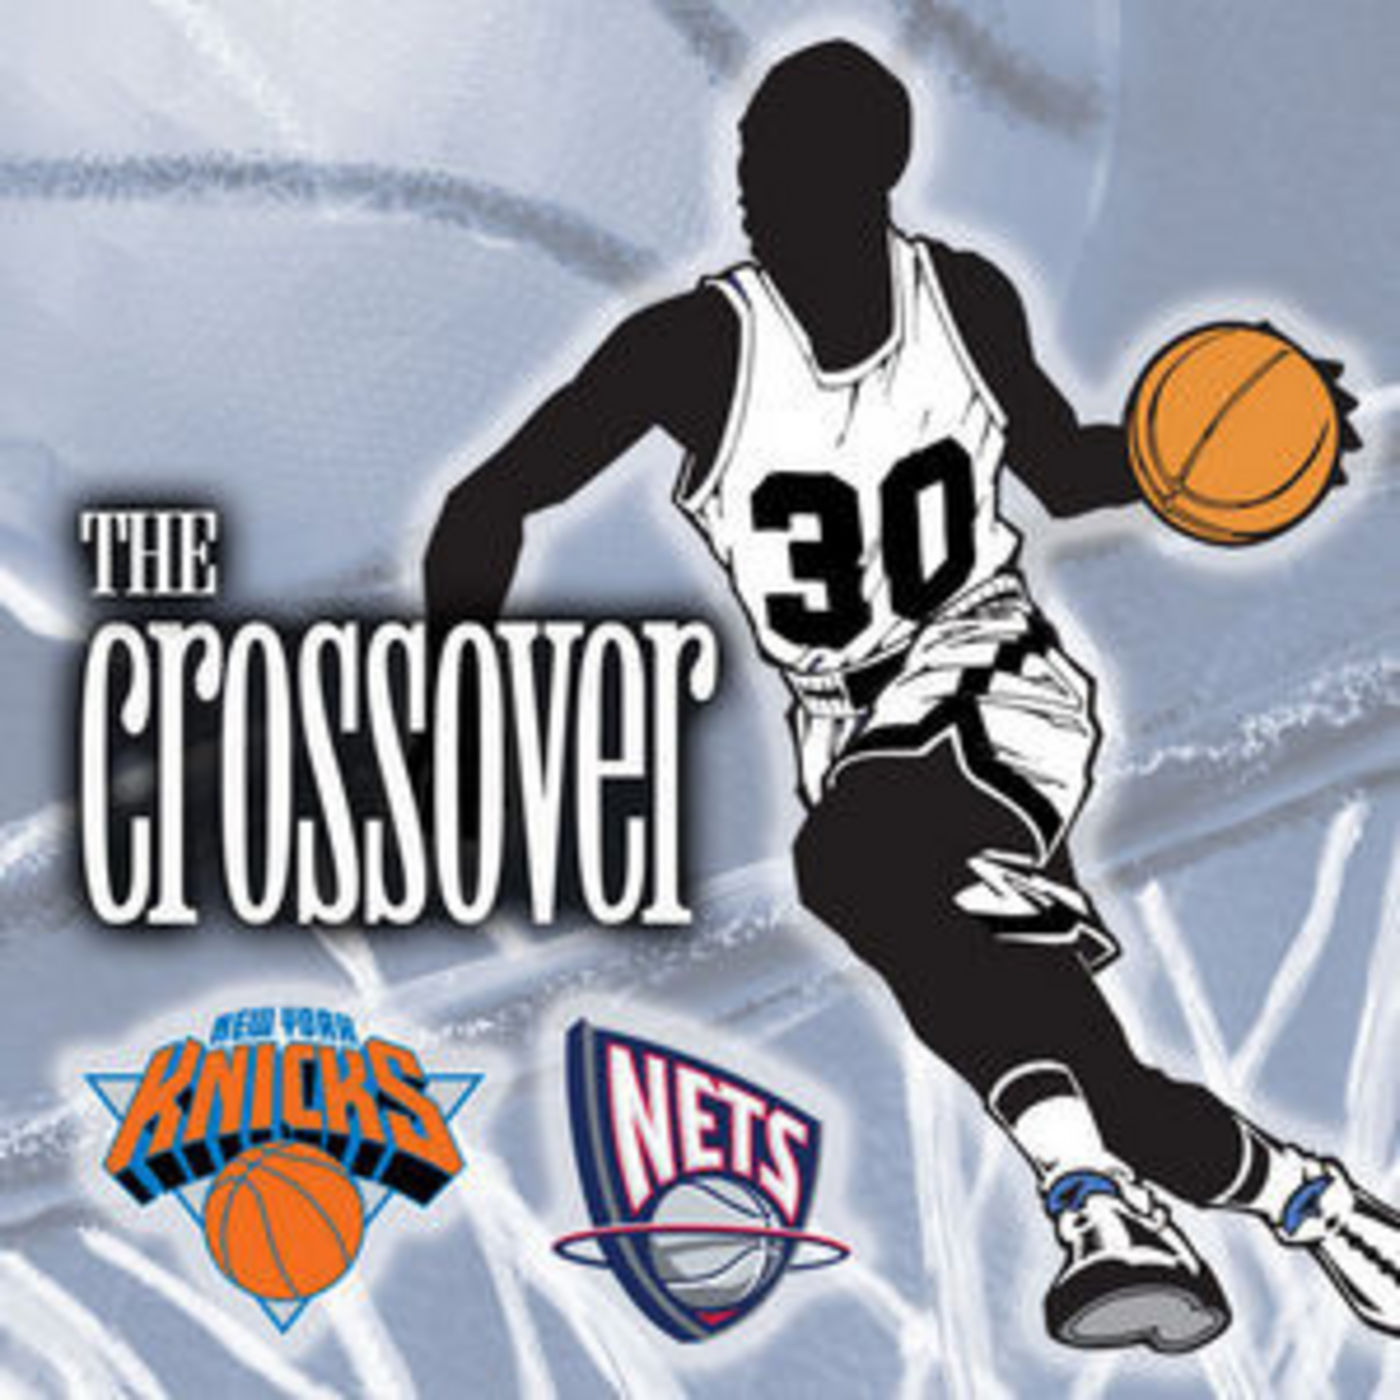 <![CDATA[TSS:The NBA Crossover-Knicks And Nets]]>